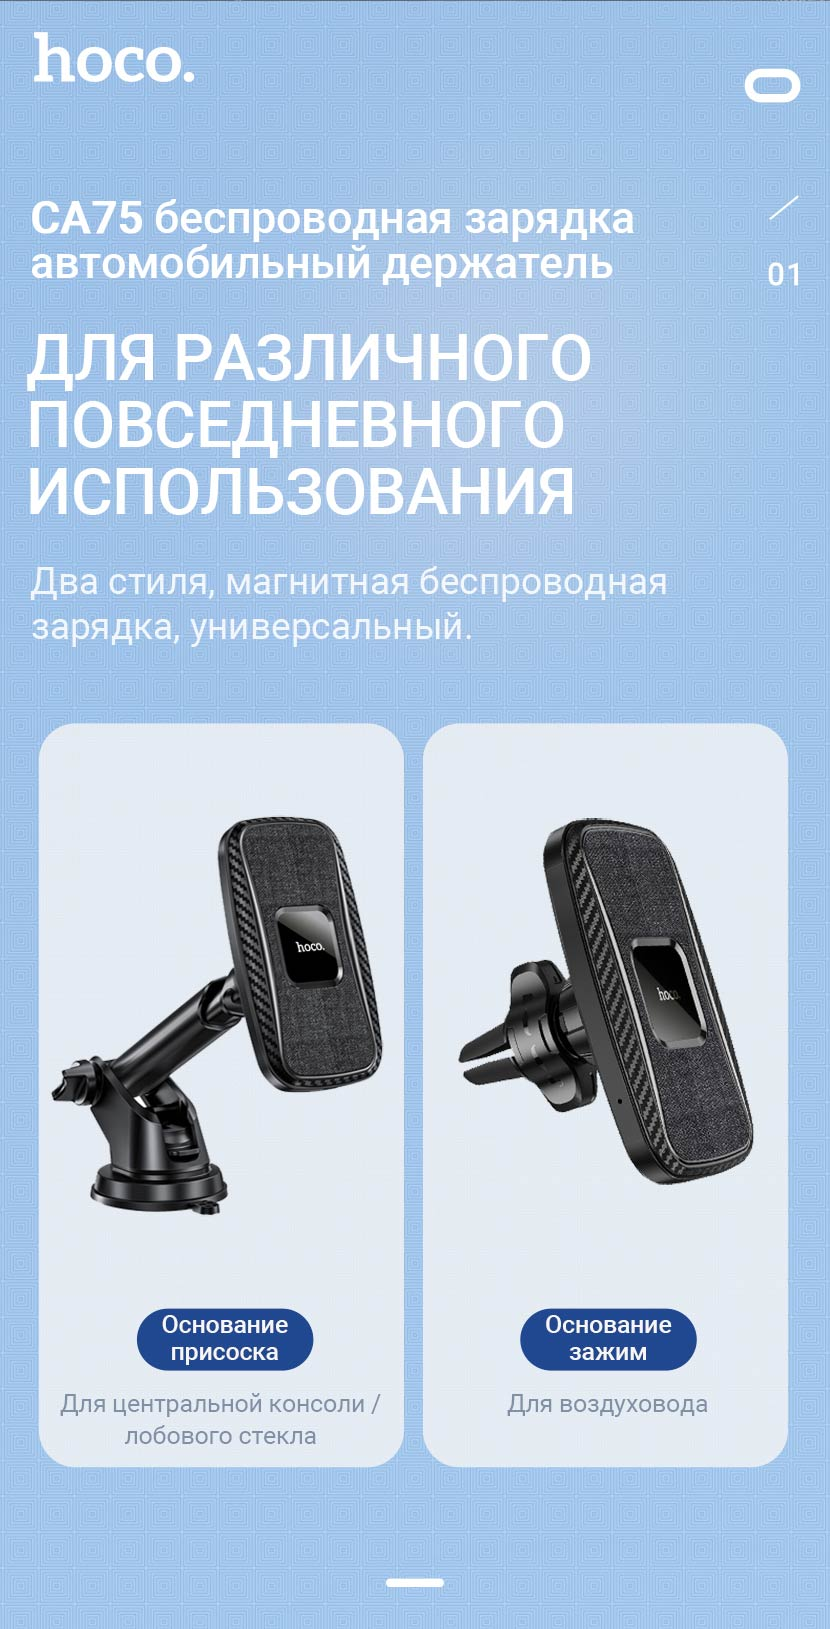 hoco news ca75 magnetic wireless charging car holder universal ru